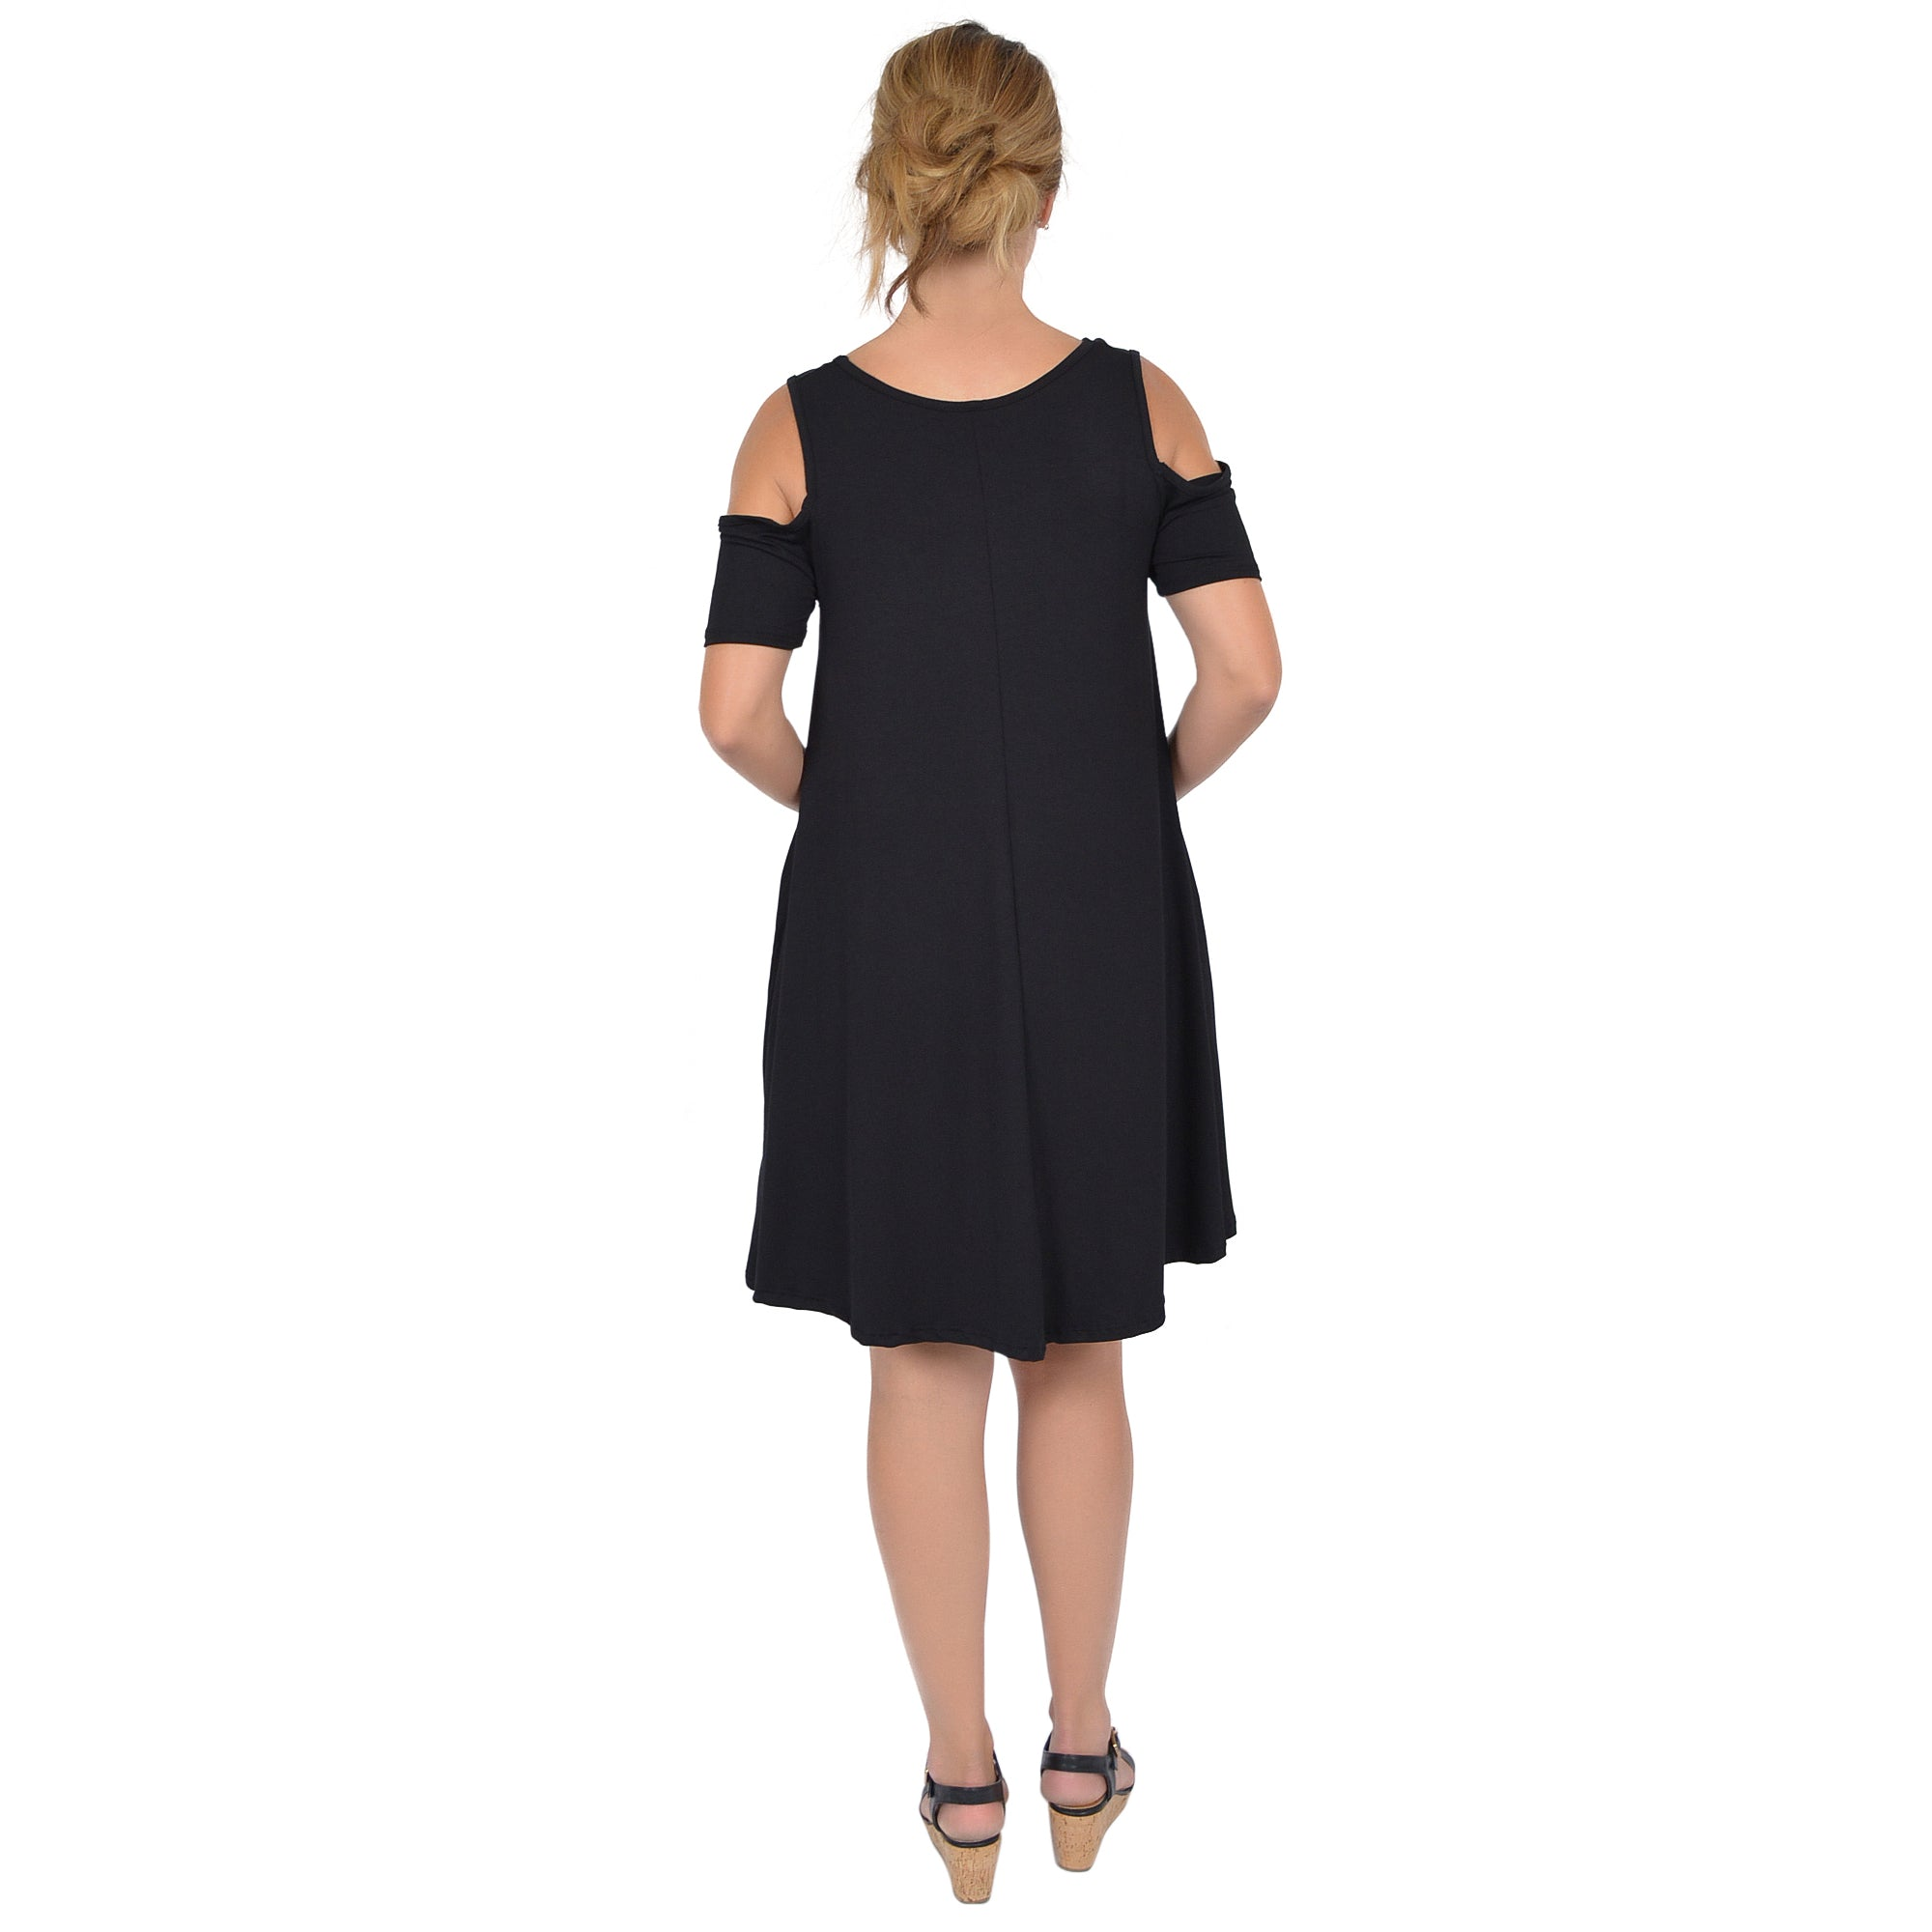 Women's Maggie Open Shoulder Short Sleeve Tank Dress